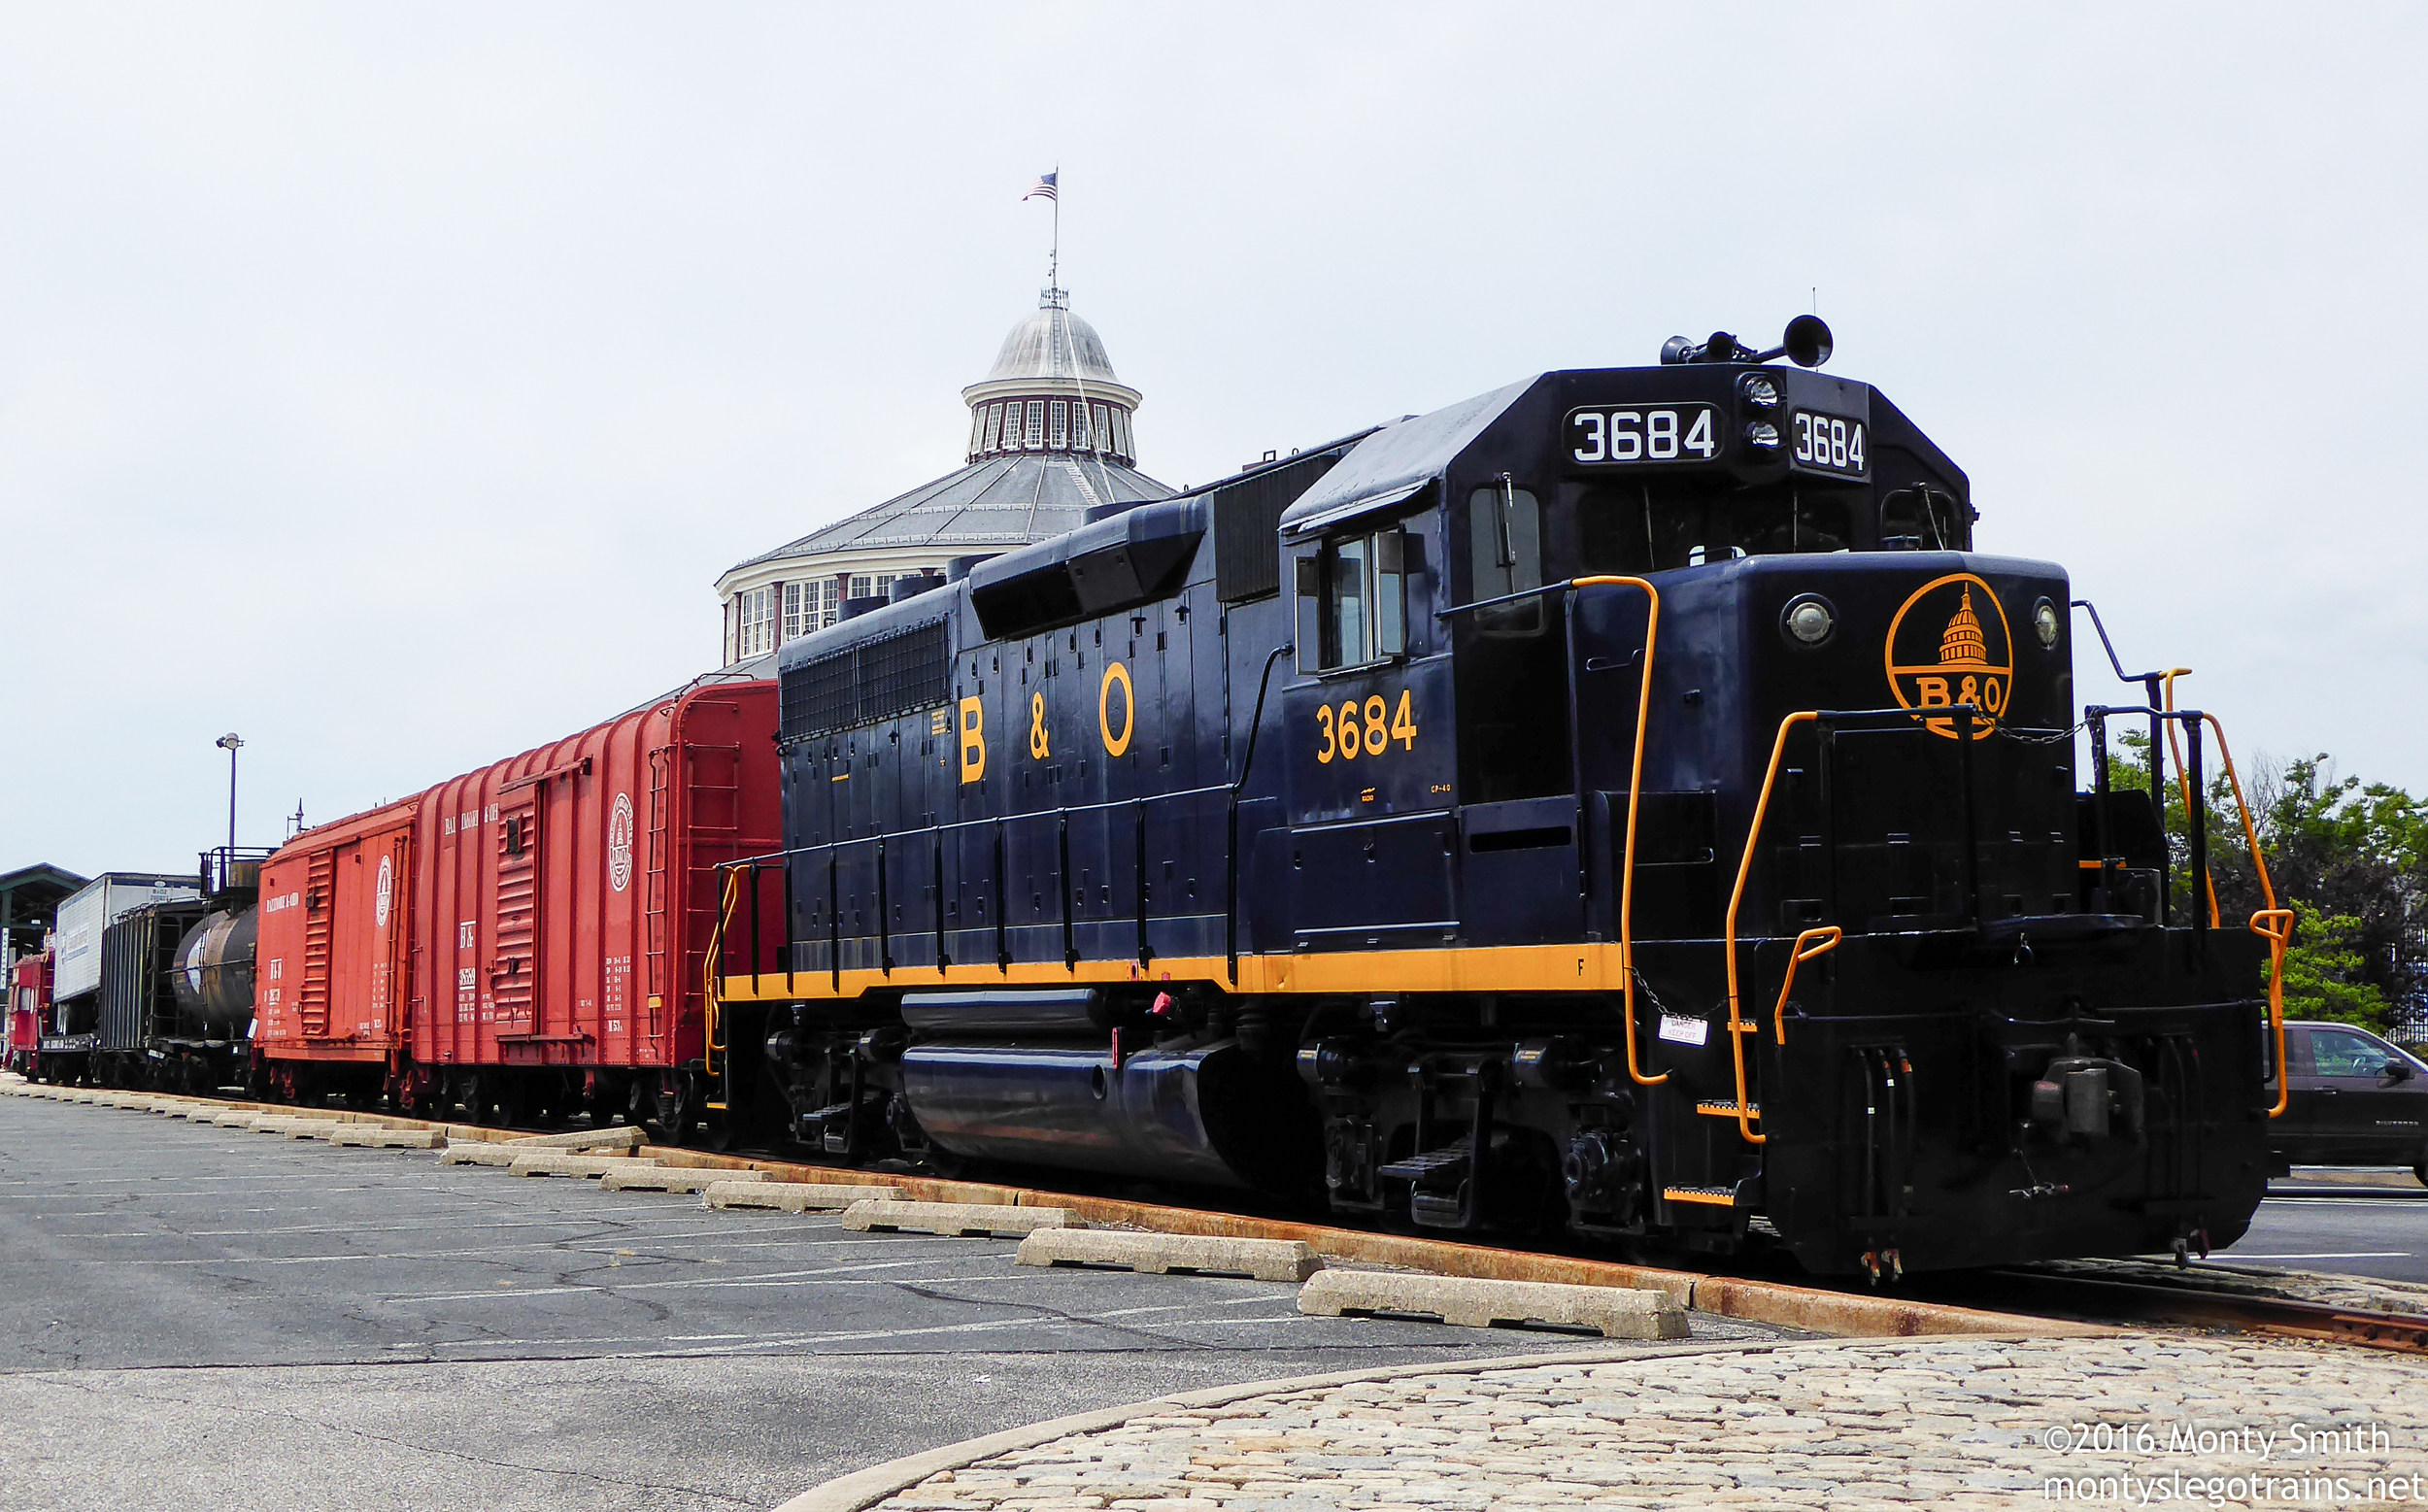 A Baltimore & Ohio geep on display out front at the B&O Railroad Museum, with the museum's trademark clerestory roof in the background.